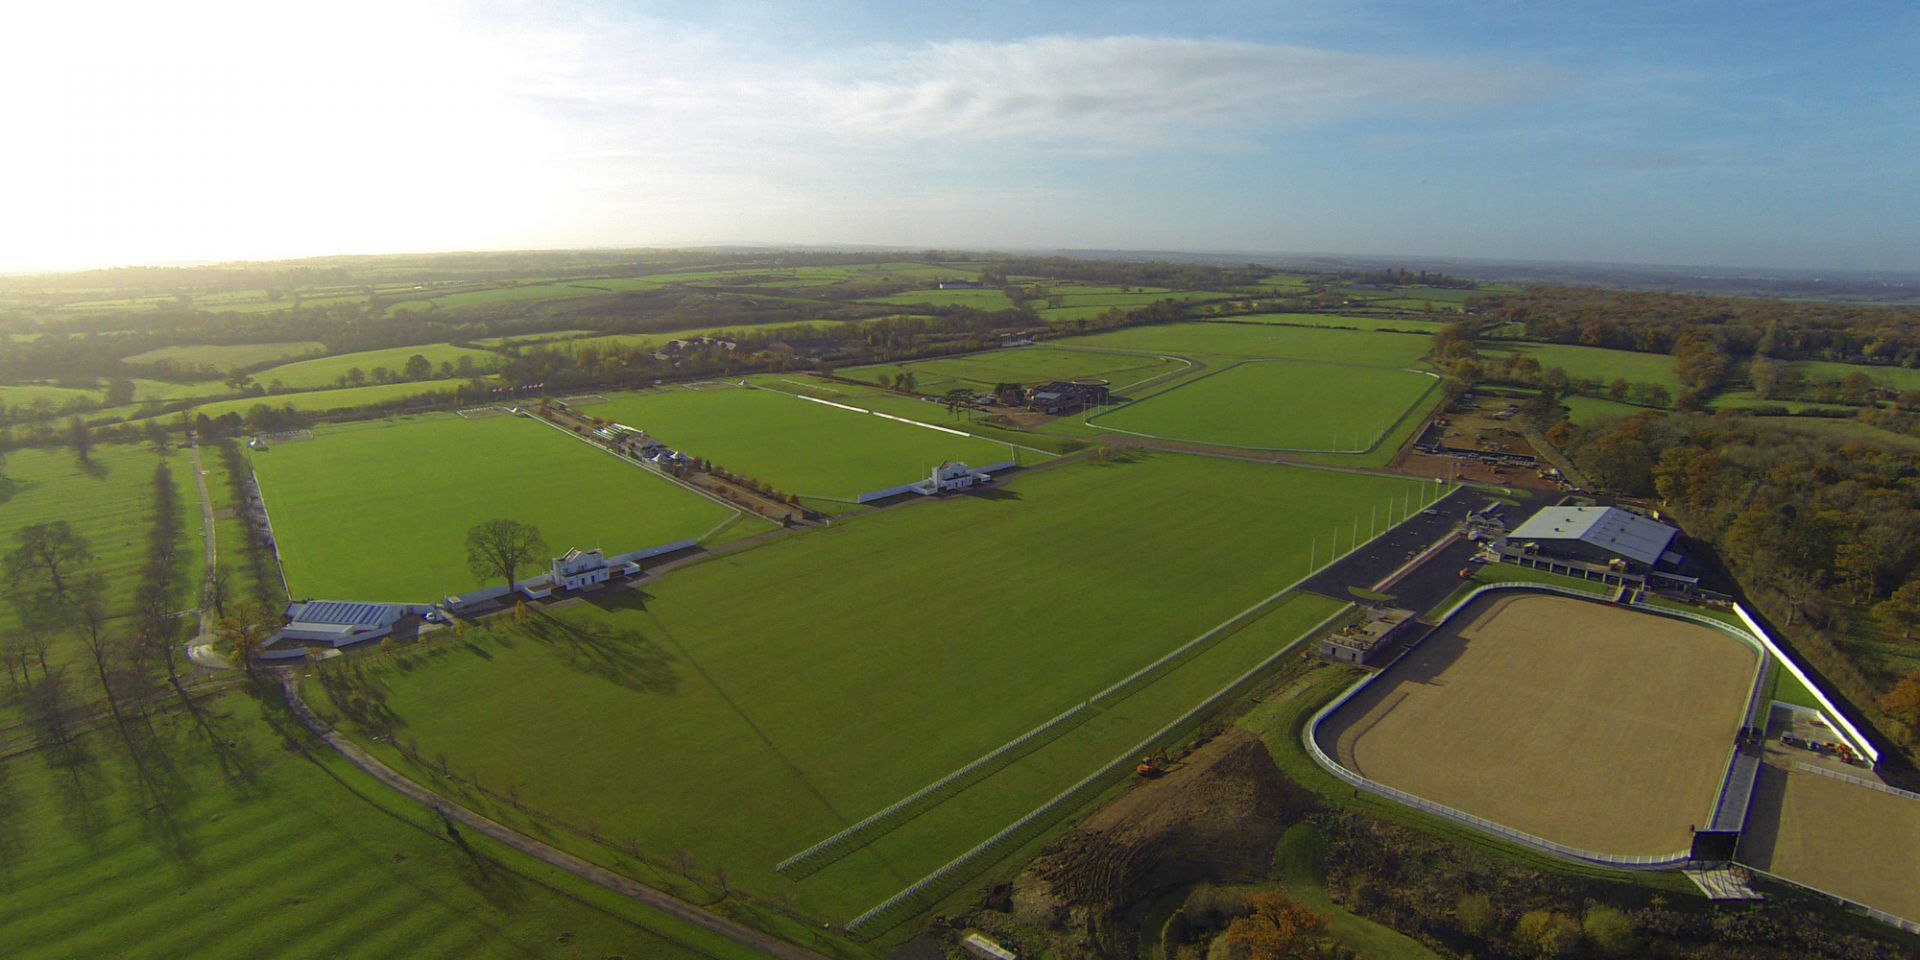 aerial view of Dallas Burston Polo Club